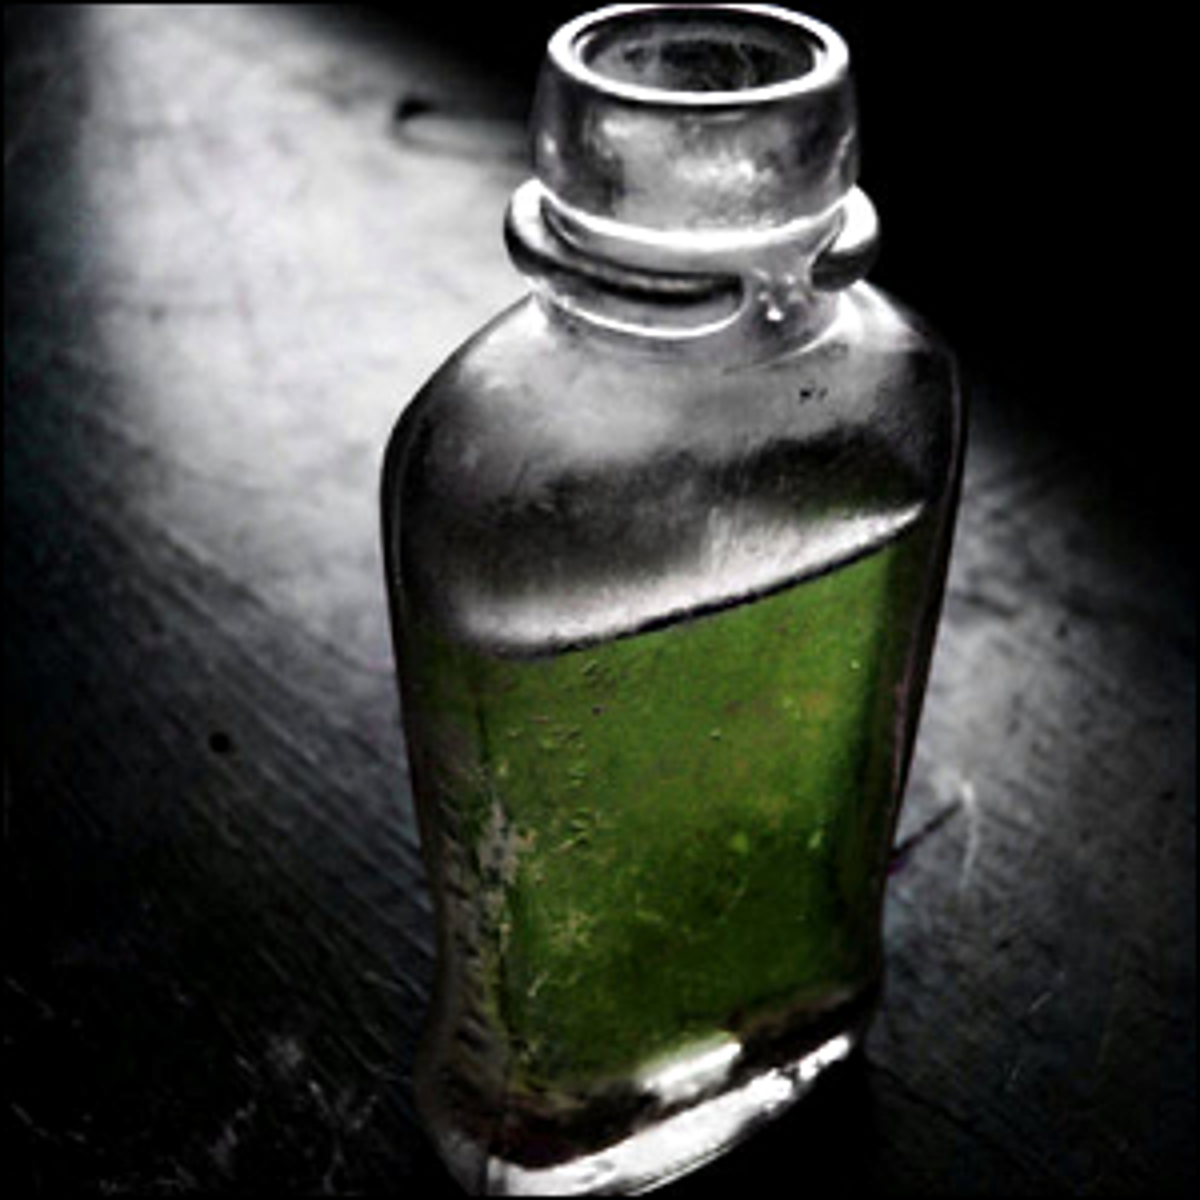 A small bottle with a green liquid inside.